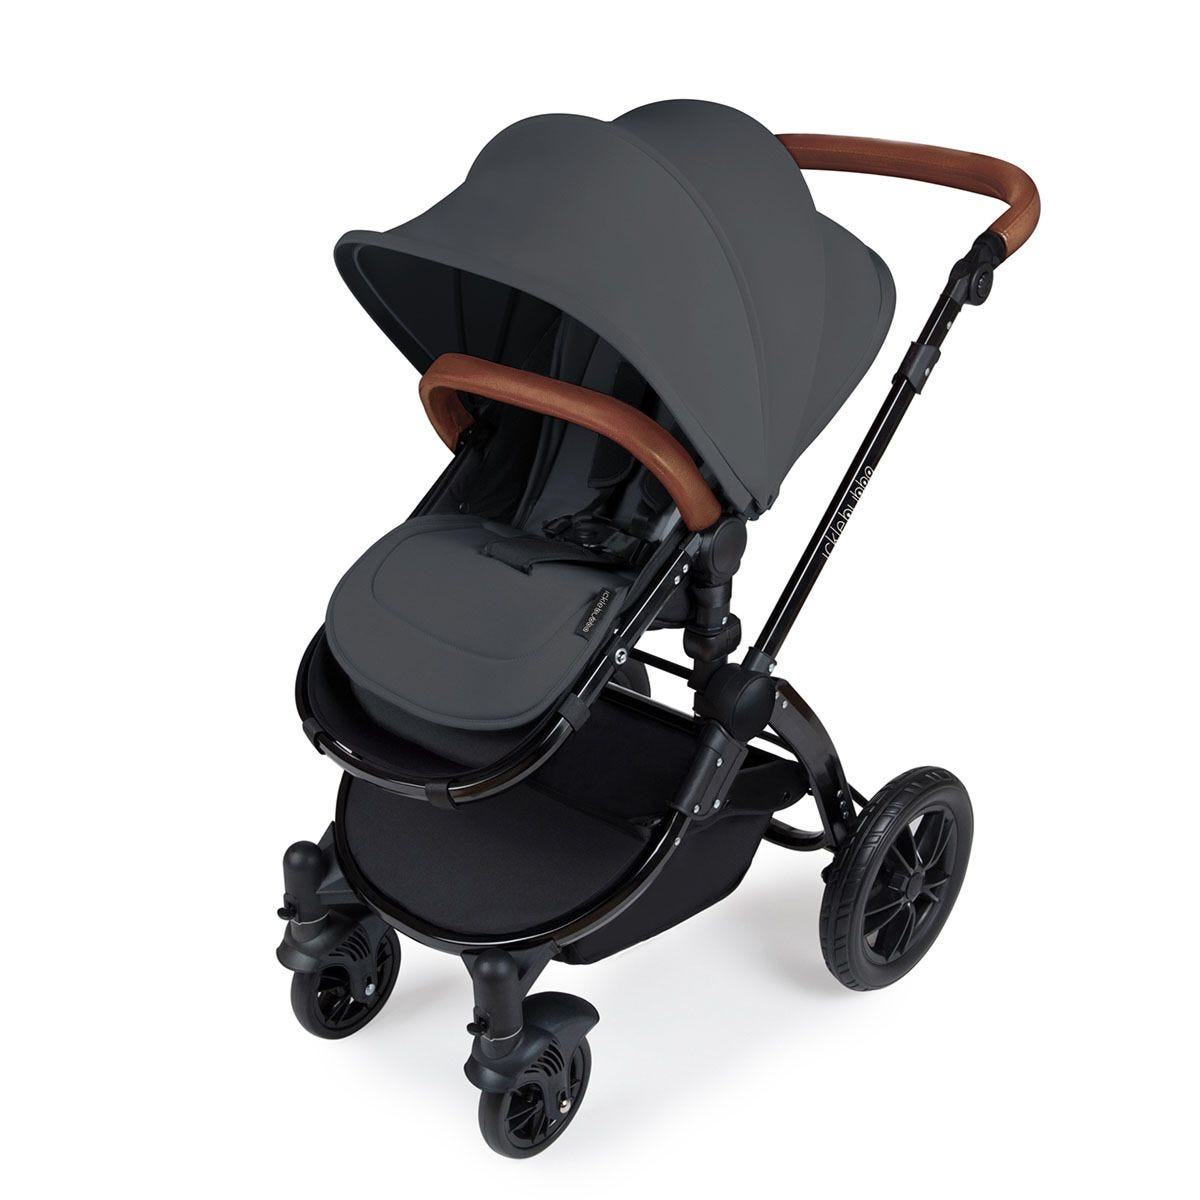 Ickle Bubba Stomp V3 All in One Travel System with Isofix Base - Graphite Grey on Black with Tan Handles